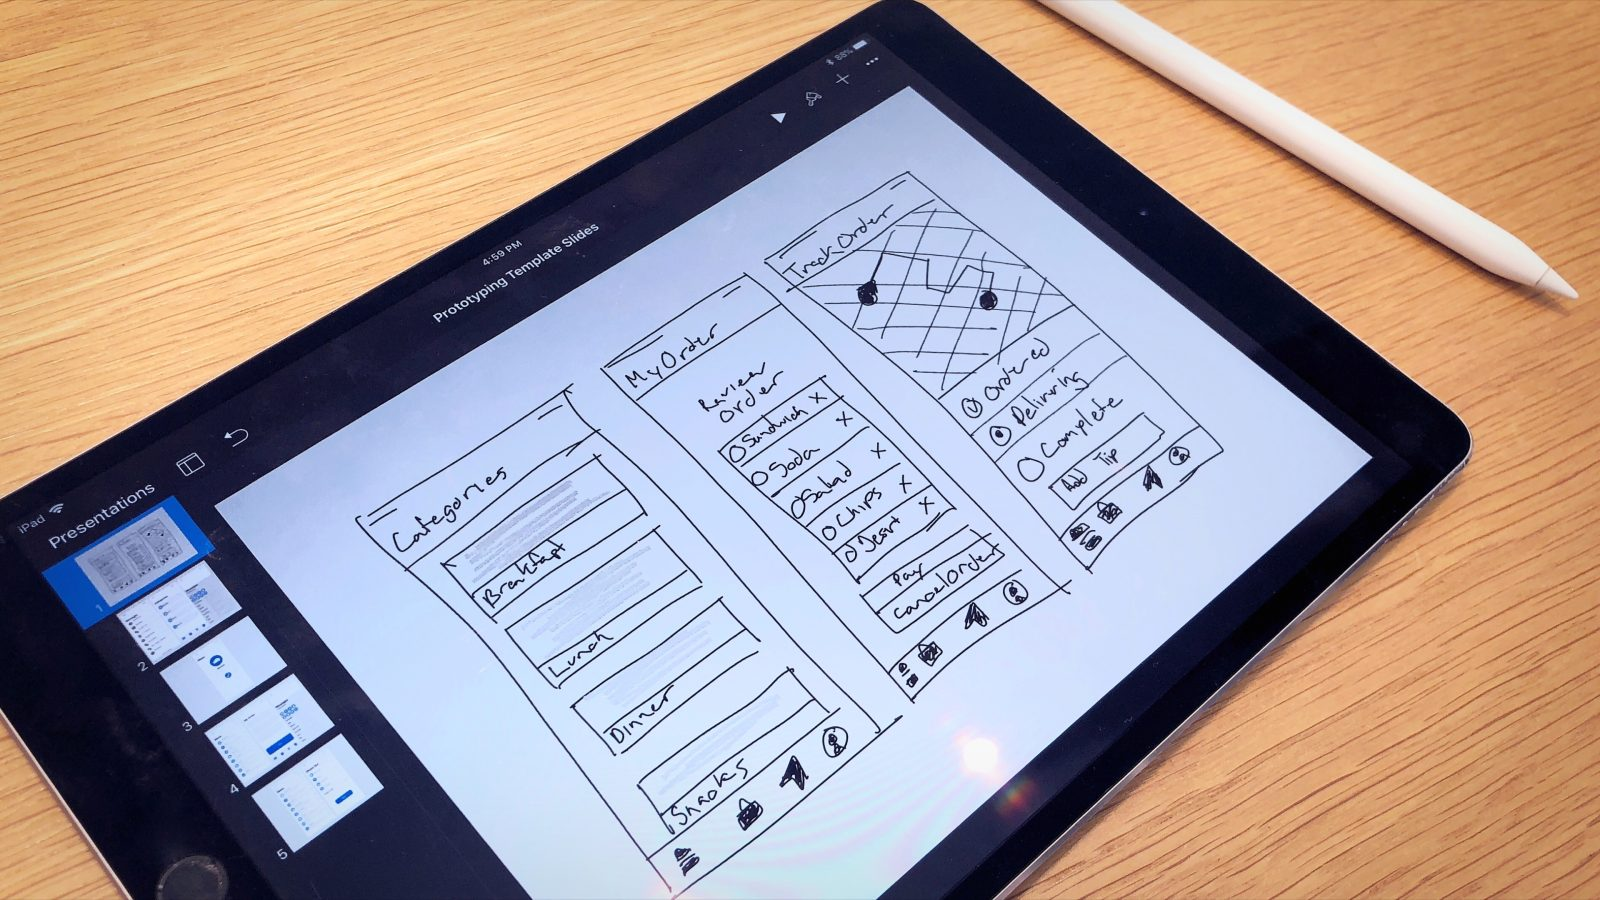 Trying Today at Apple's new app prototyping with Keynote session